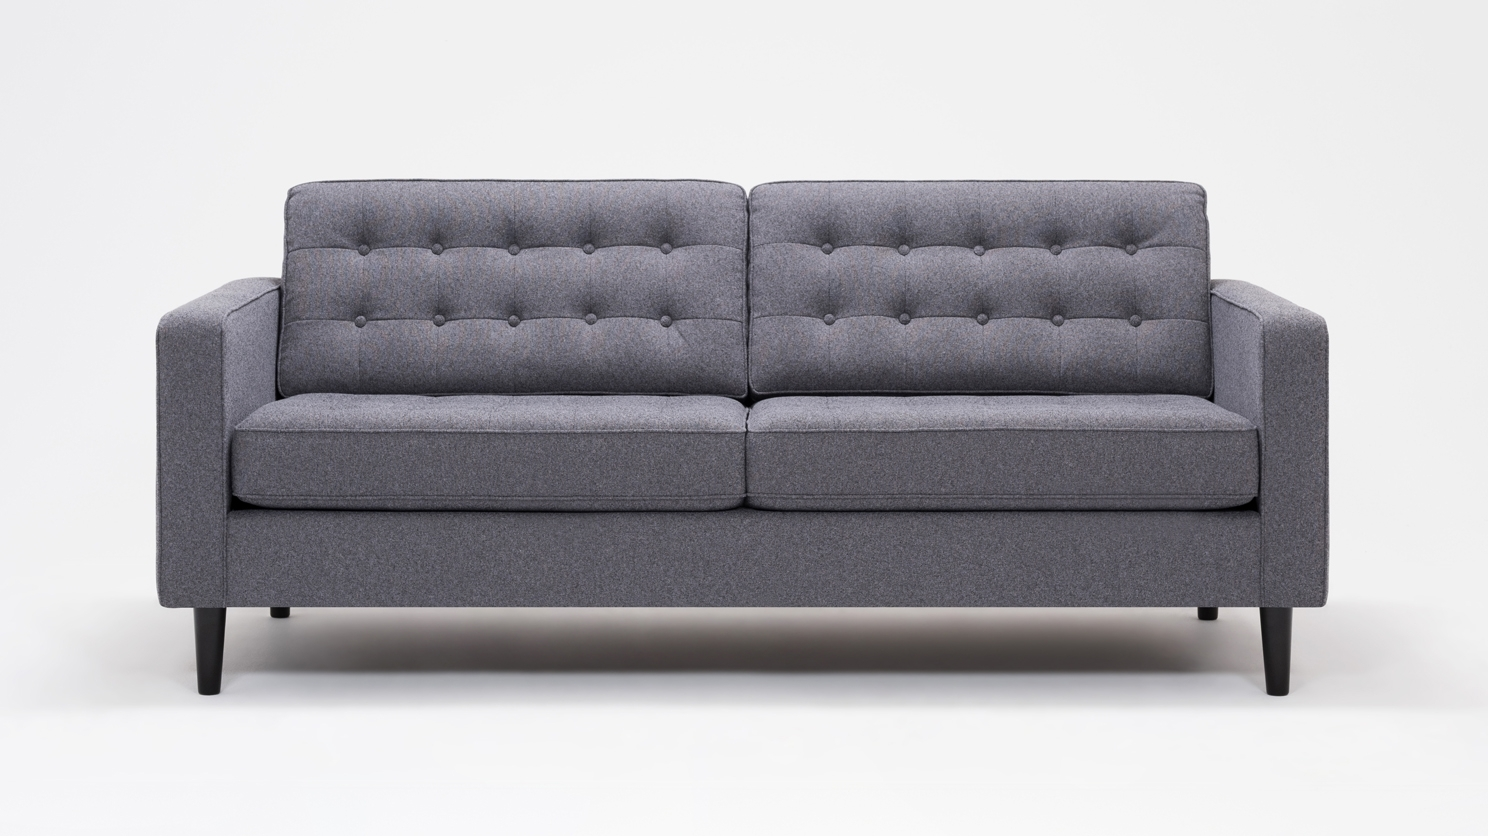 Reverie Apartment Sofa – Fabric Throughout Apartment Sofas (View 12 of 15)